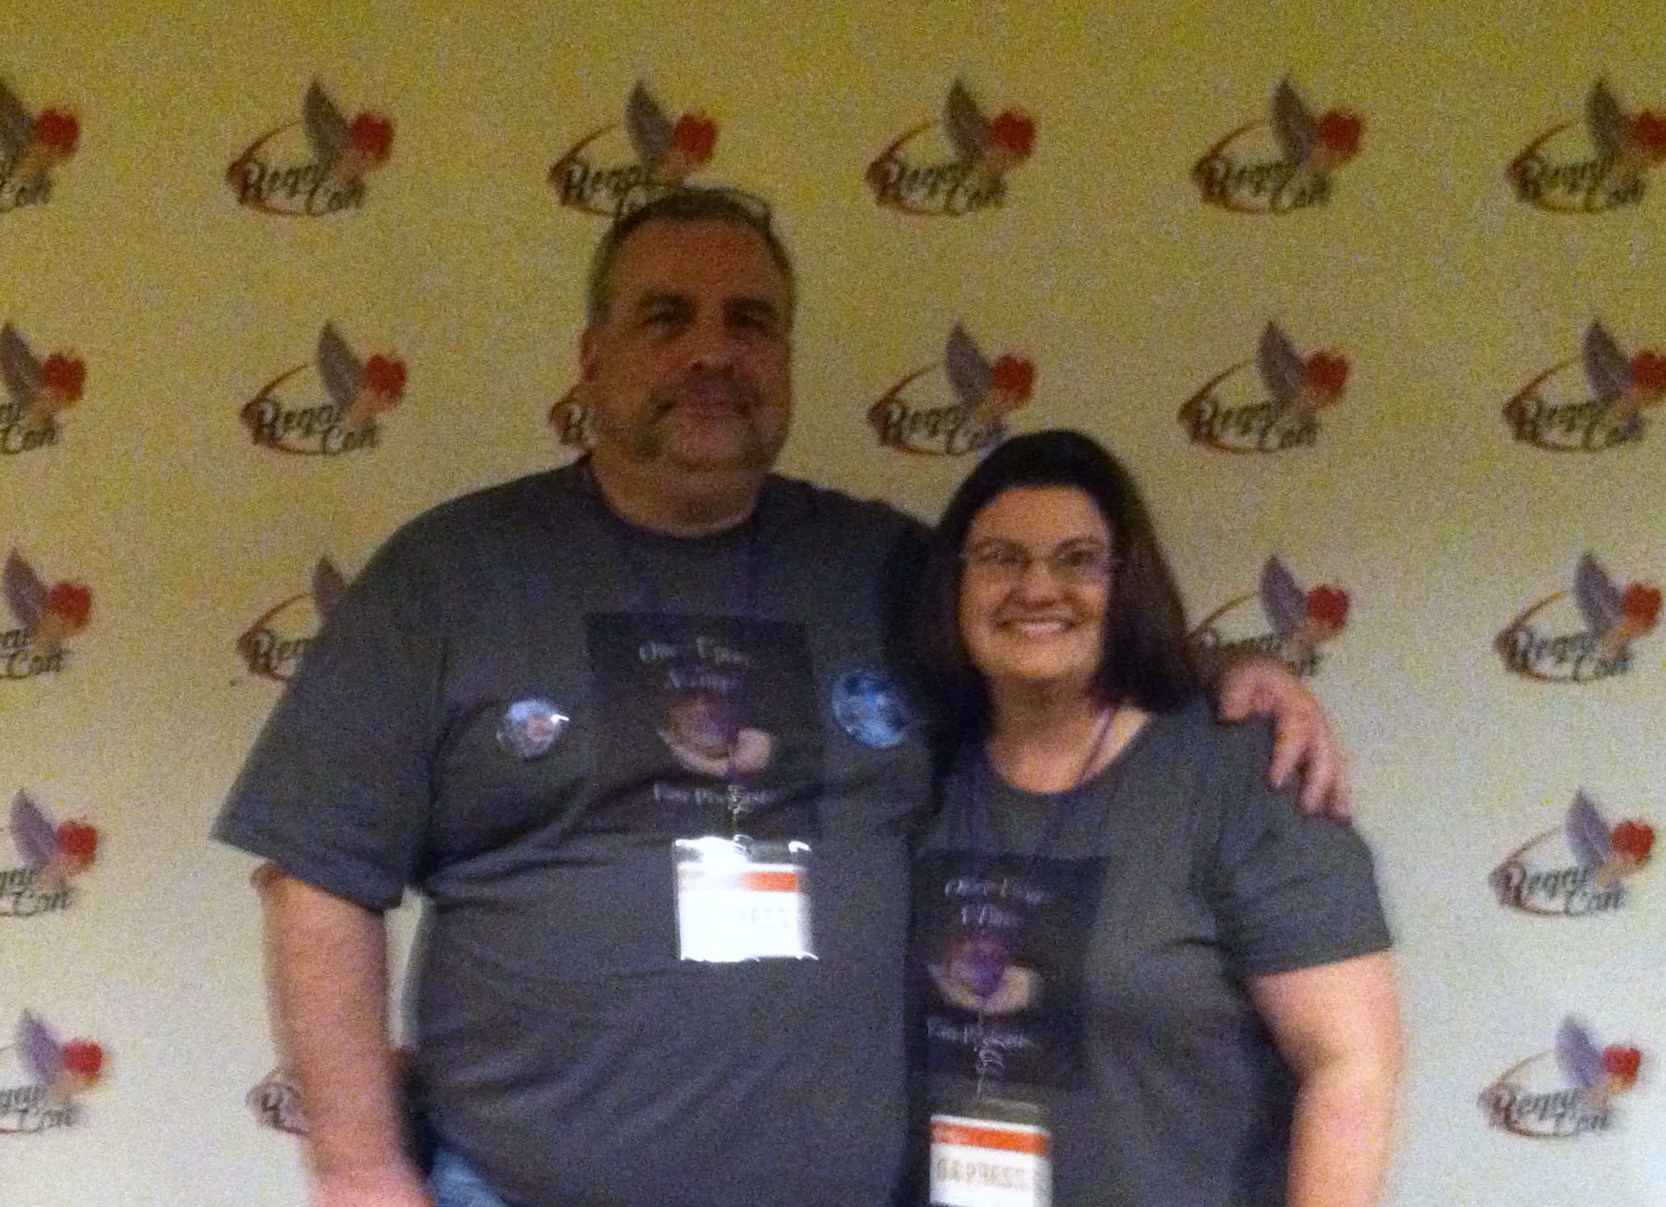 Podcasters Jeff and Colleen Roney from Once Upon a Time Fan Podcast